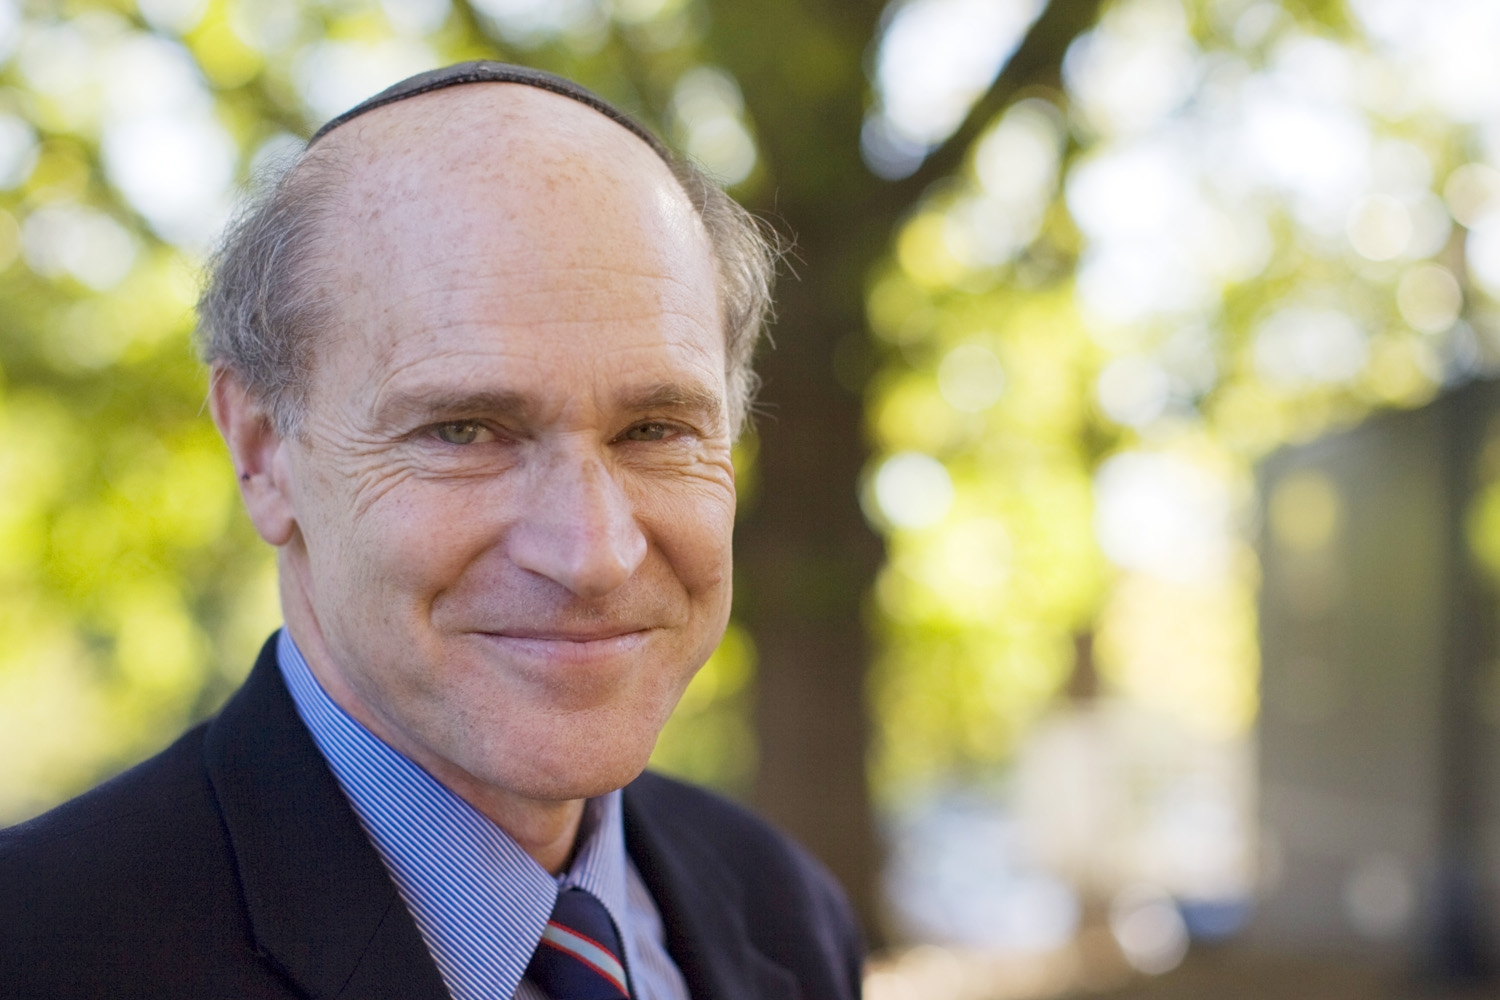 UVA religious studies professor Peter Ochs serves as director of research for the Global Covenant of Religions.